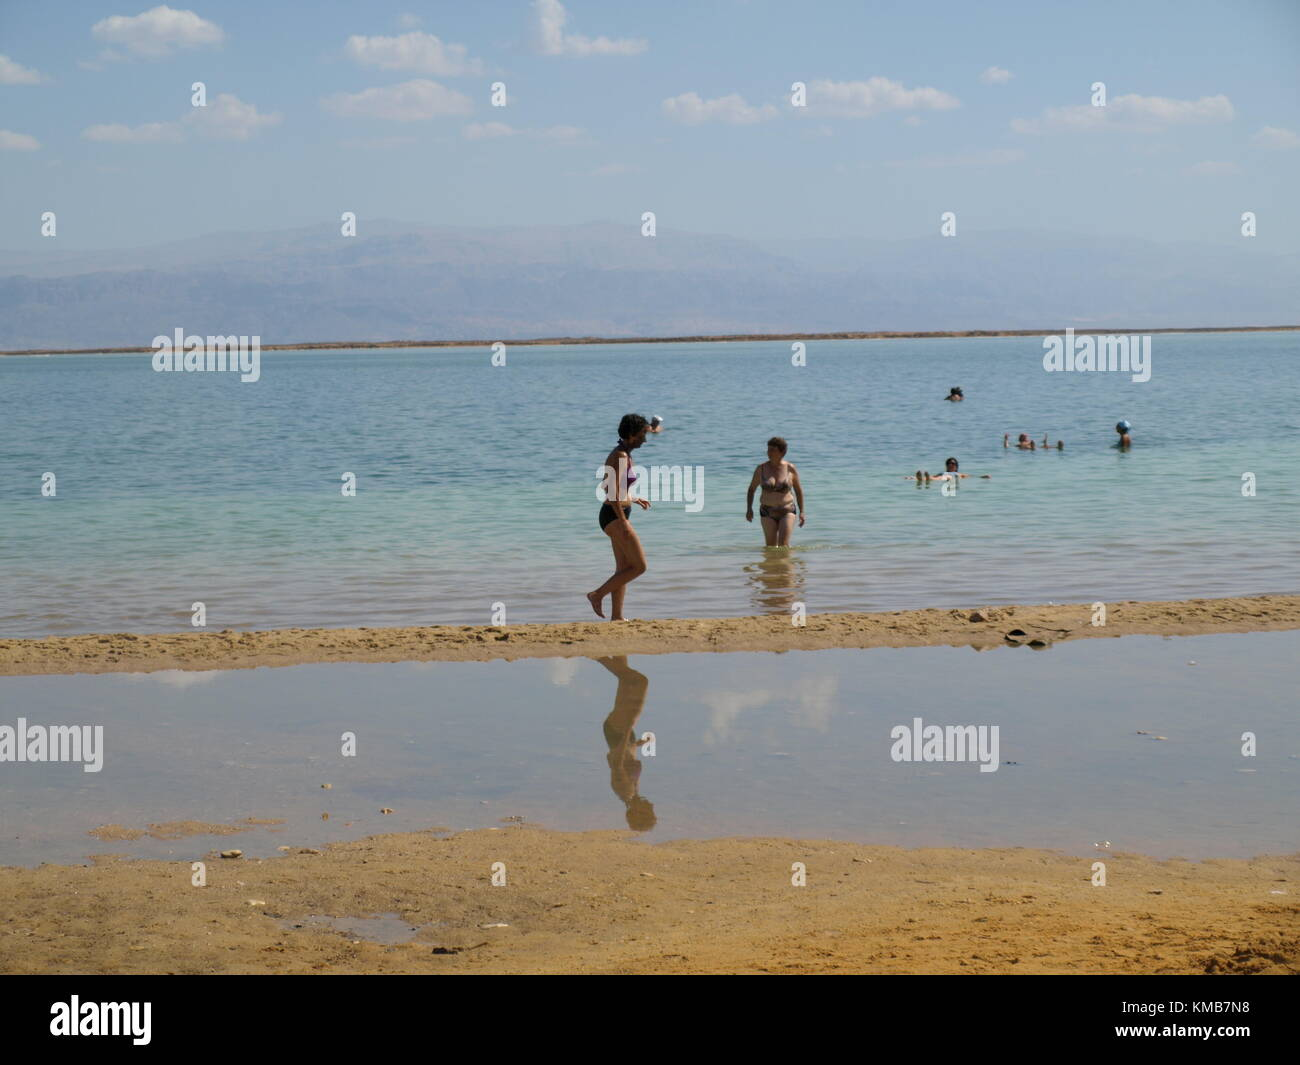 A woman with mineral mud on her face is walking on the beach of the dead sea Stock Photo